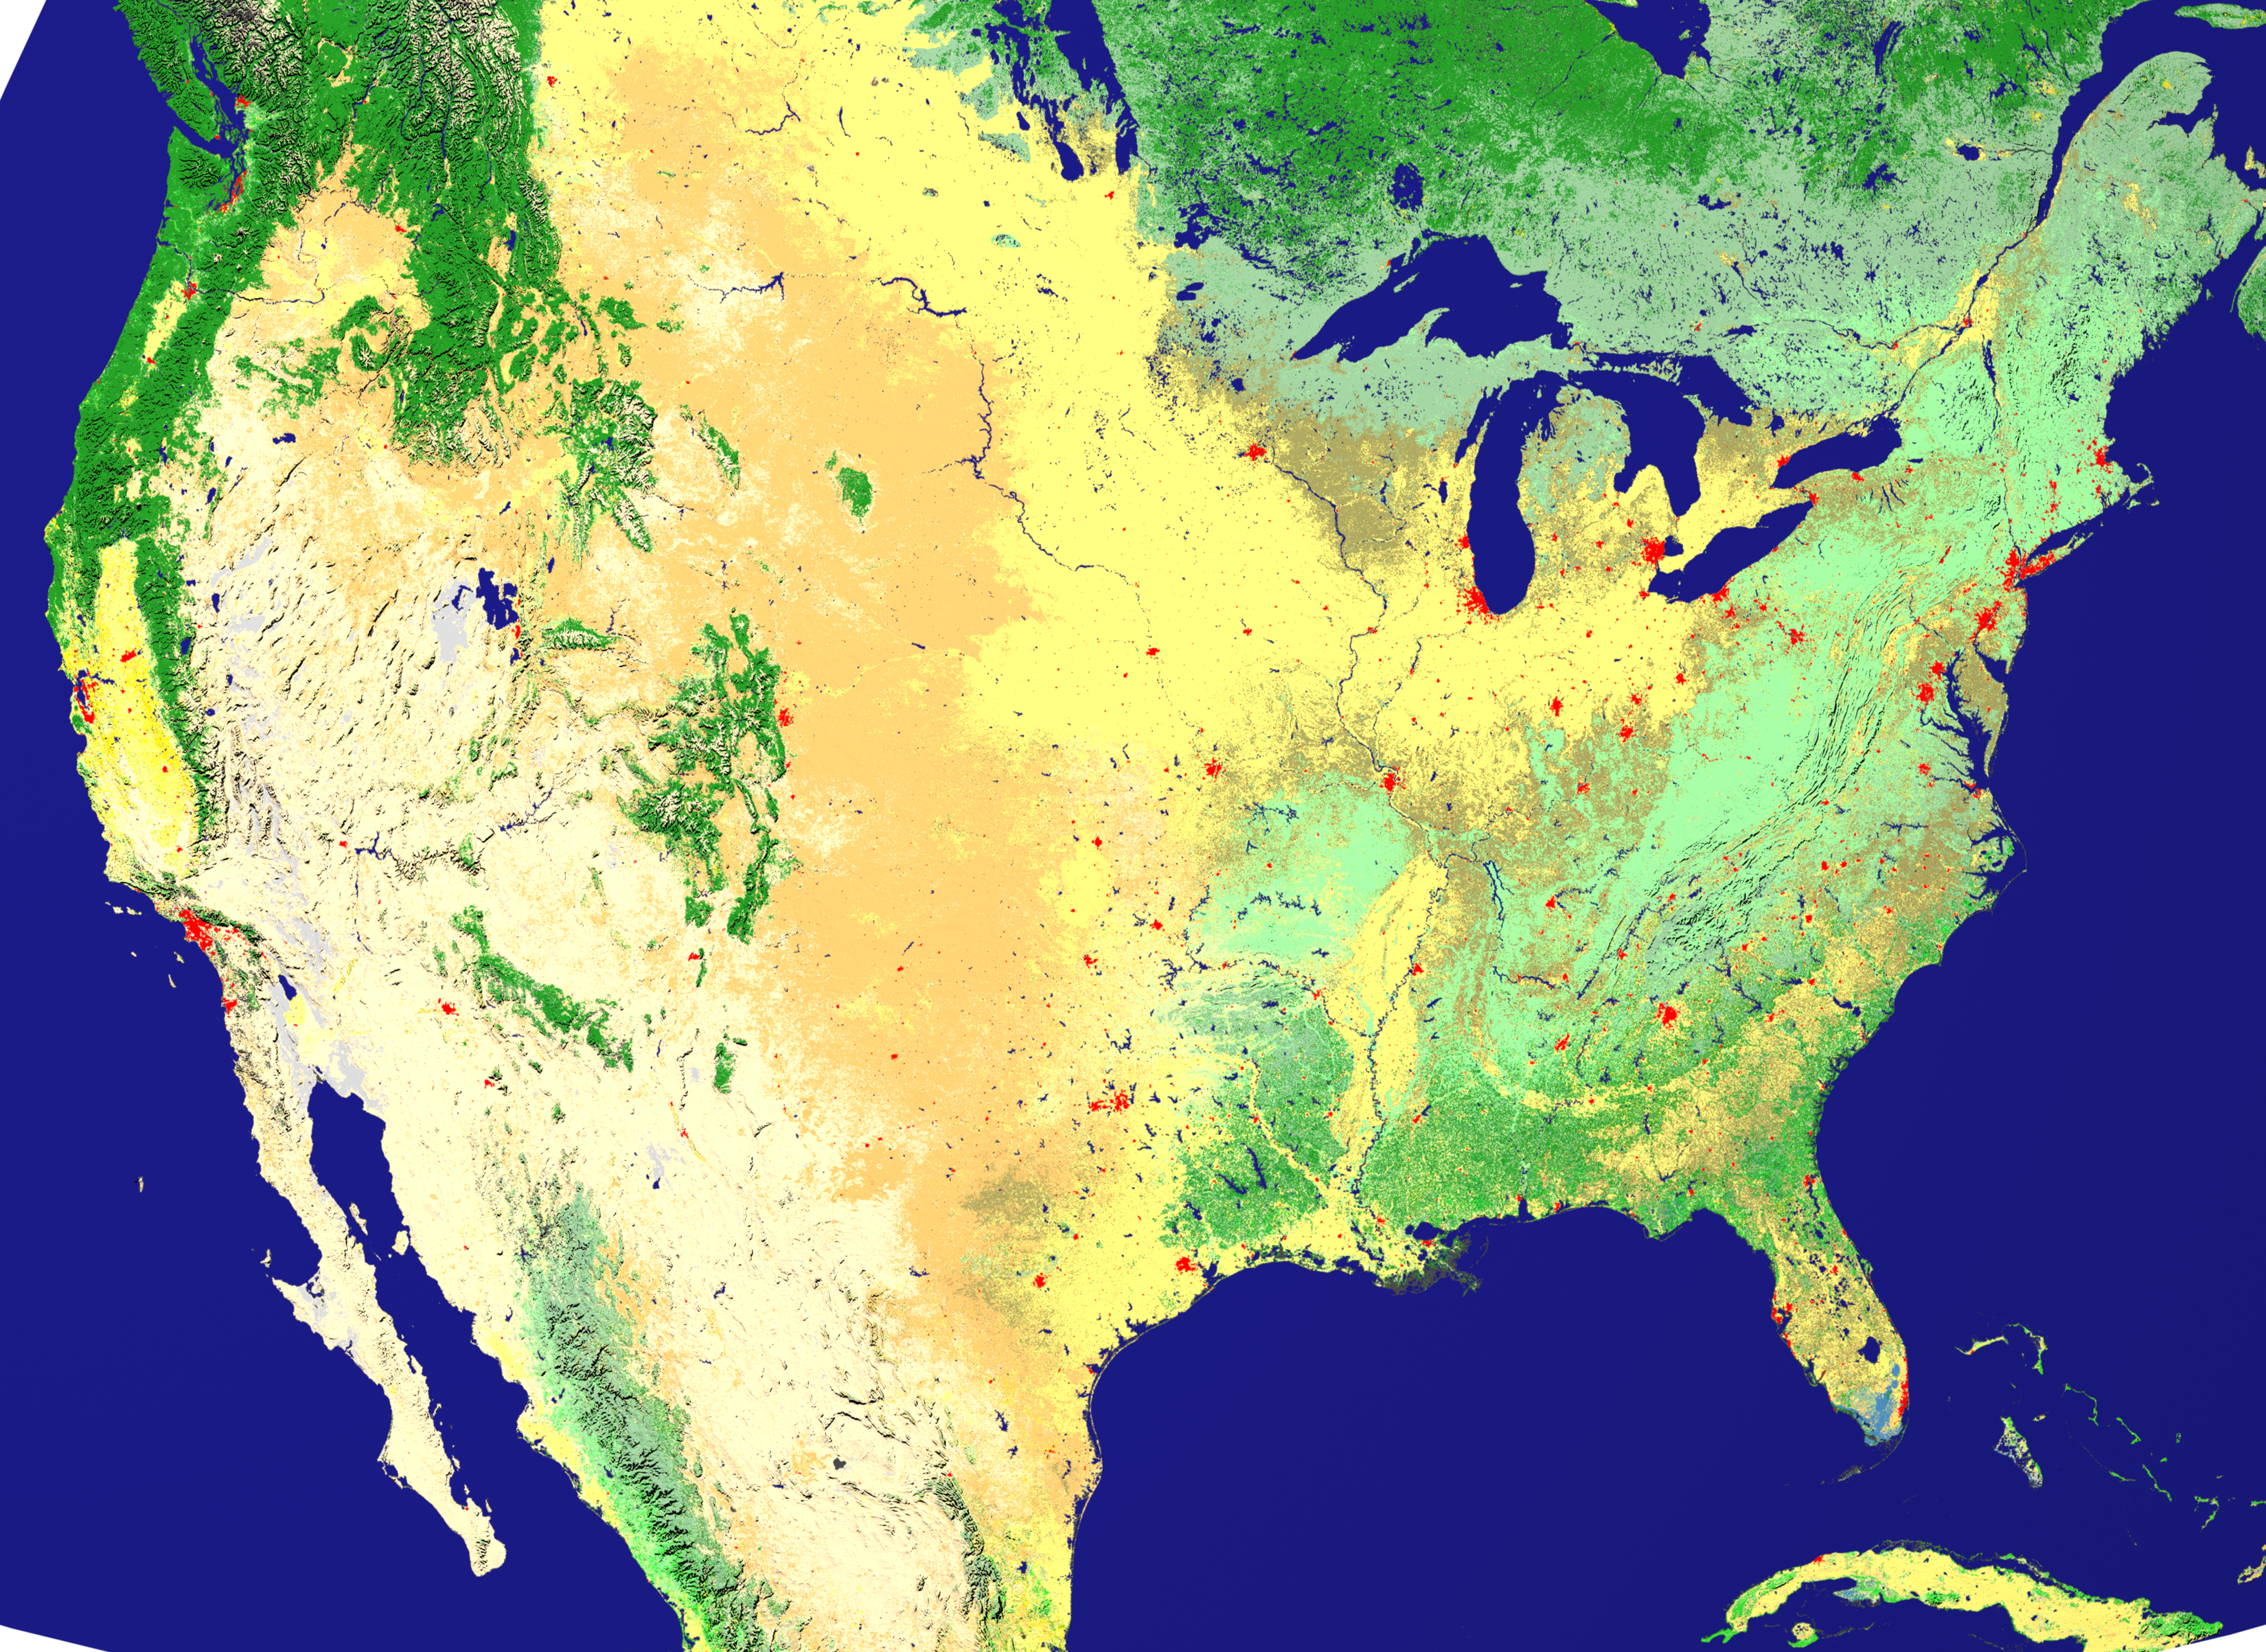 NASA Visible Earth New Land Cover Classification Maps - Land use classification map us